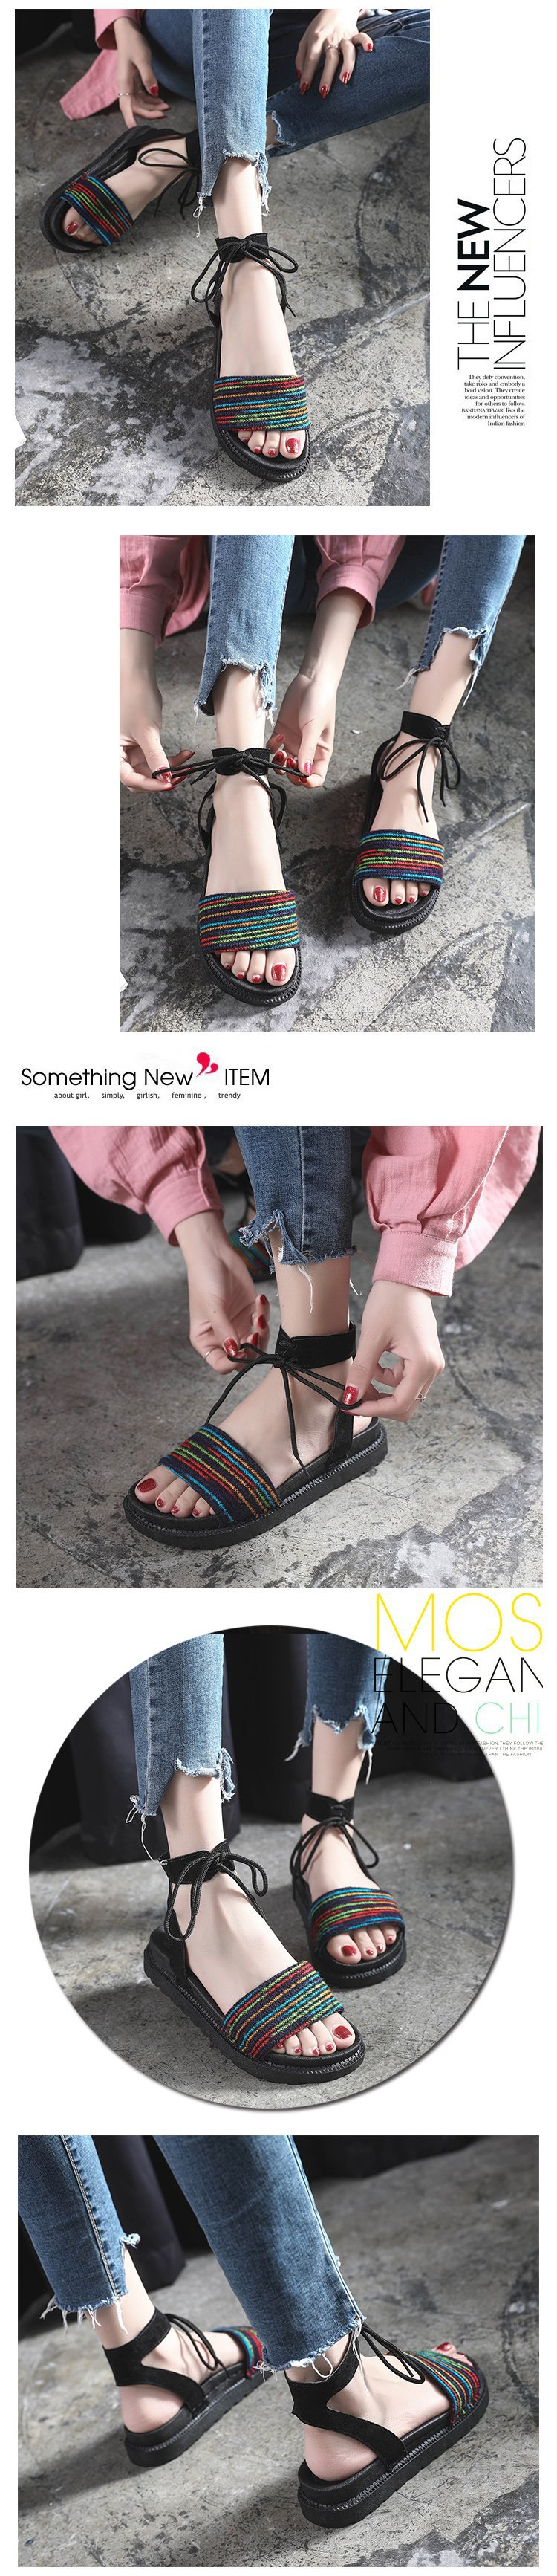 Casual Lace-up Rome Gladiator Women Sandals Solid Ankle Strap Shallow Women Shoes Summer Fashion Flat Sandals 26